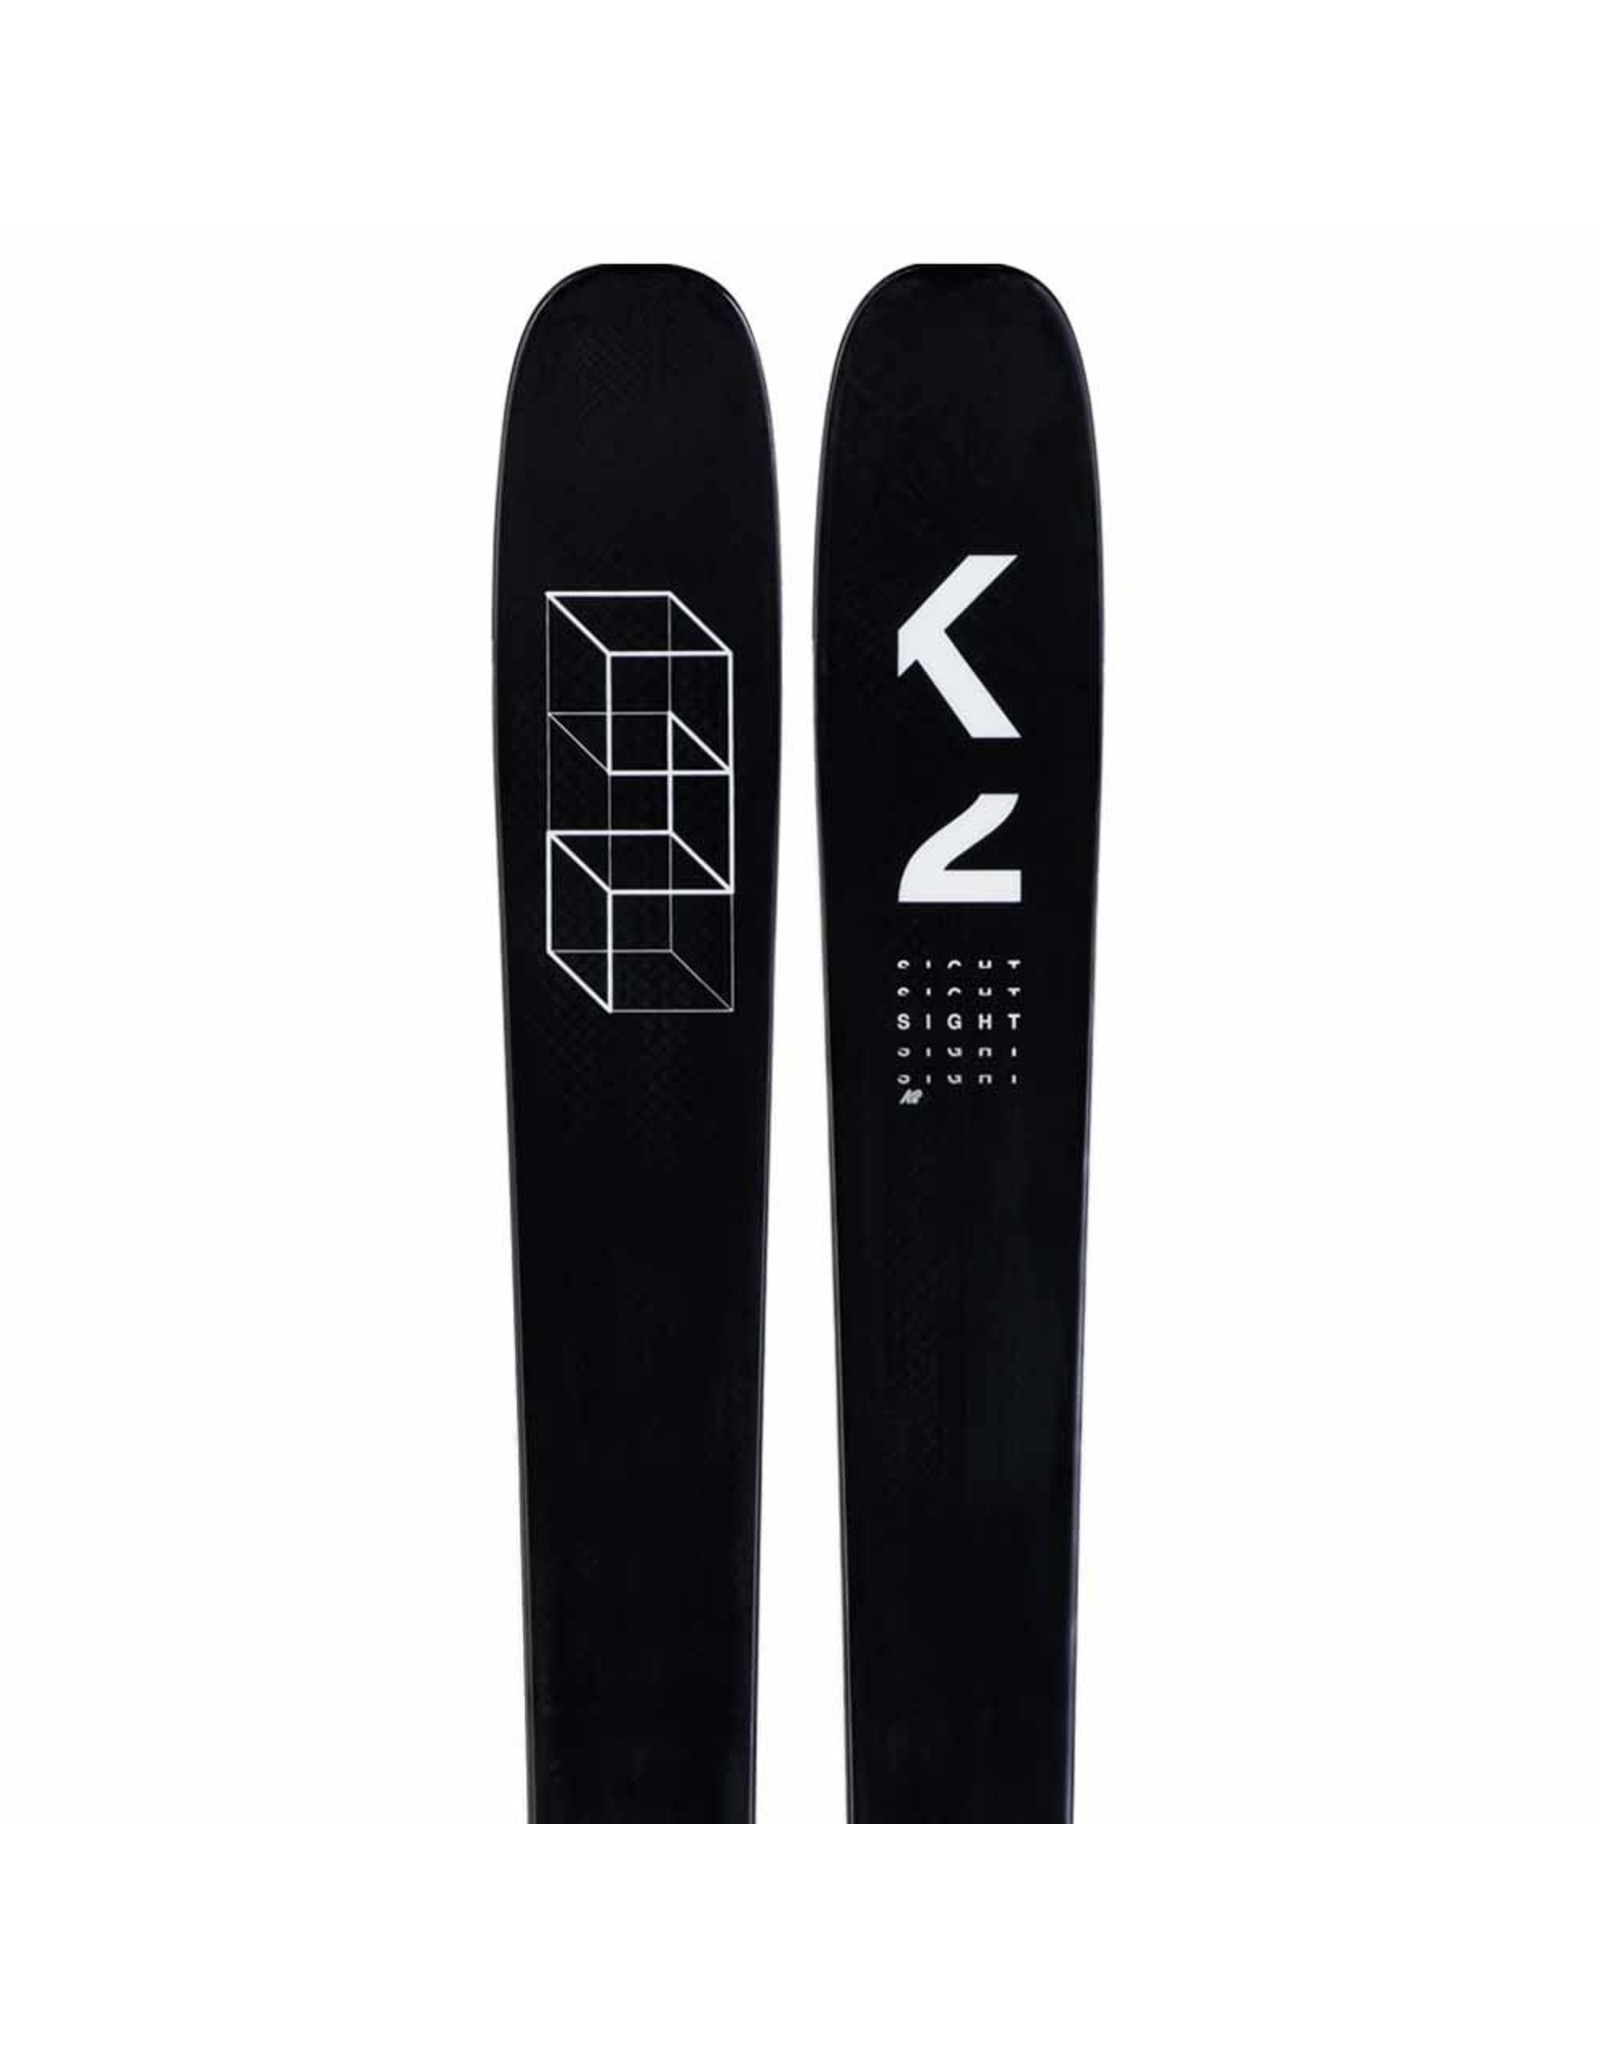 K2 K2 SIGHT BINDING INCLUDED MEN ALPINE SKI 19